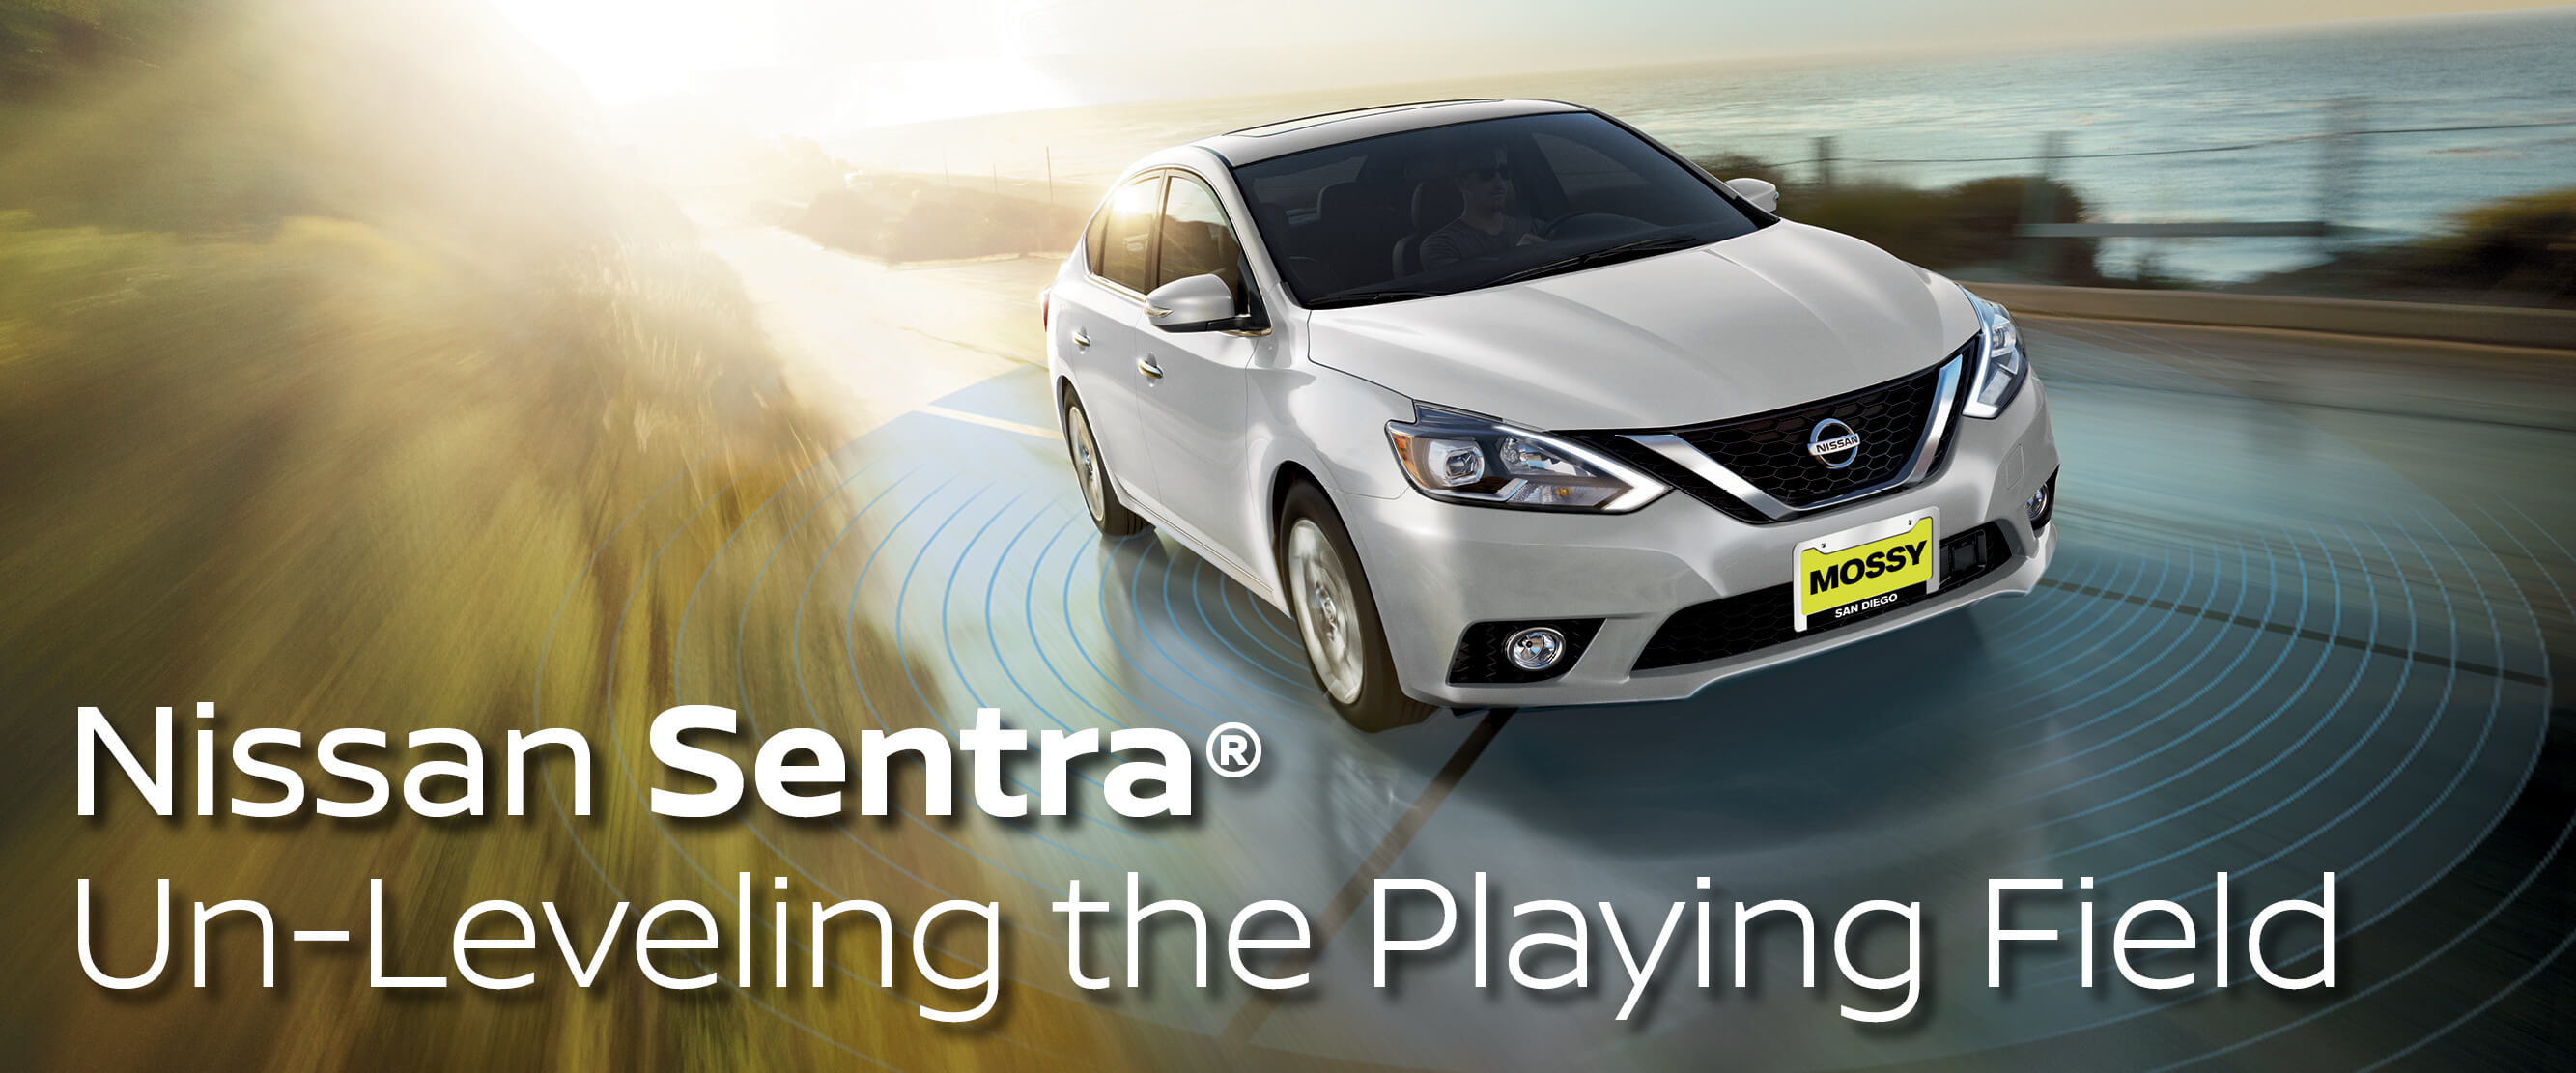 Nissan Sentra Un-Leveling the Playing Field